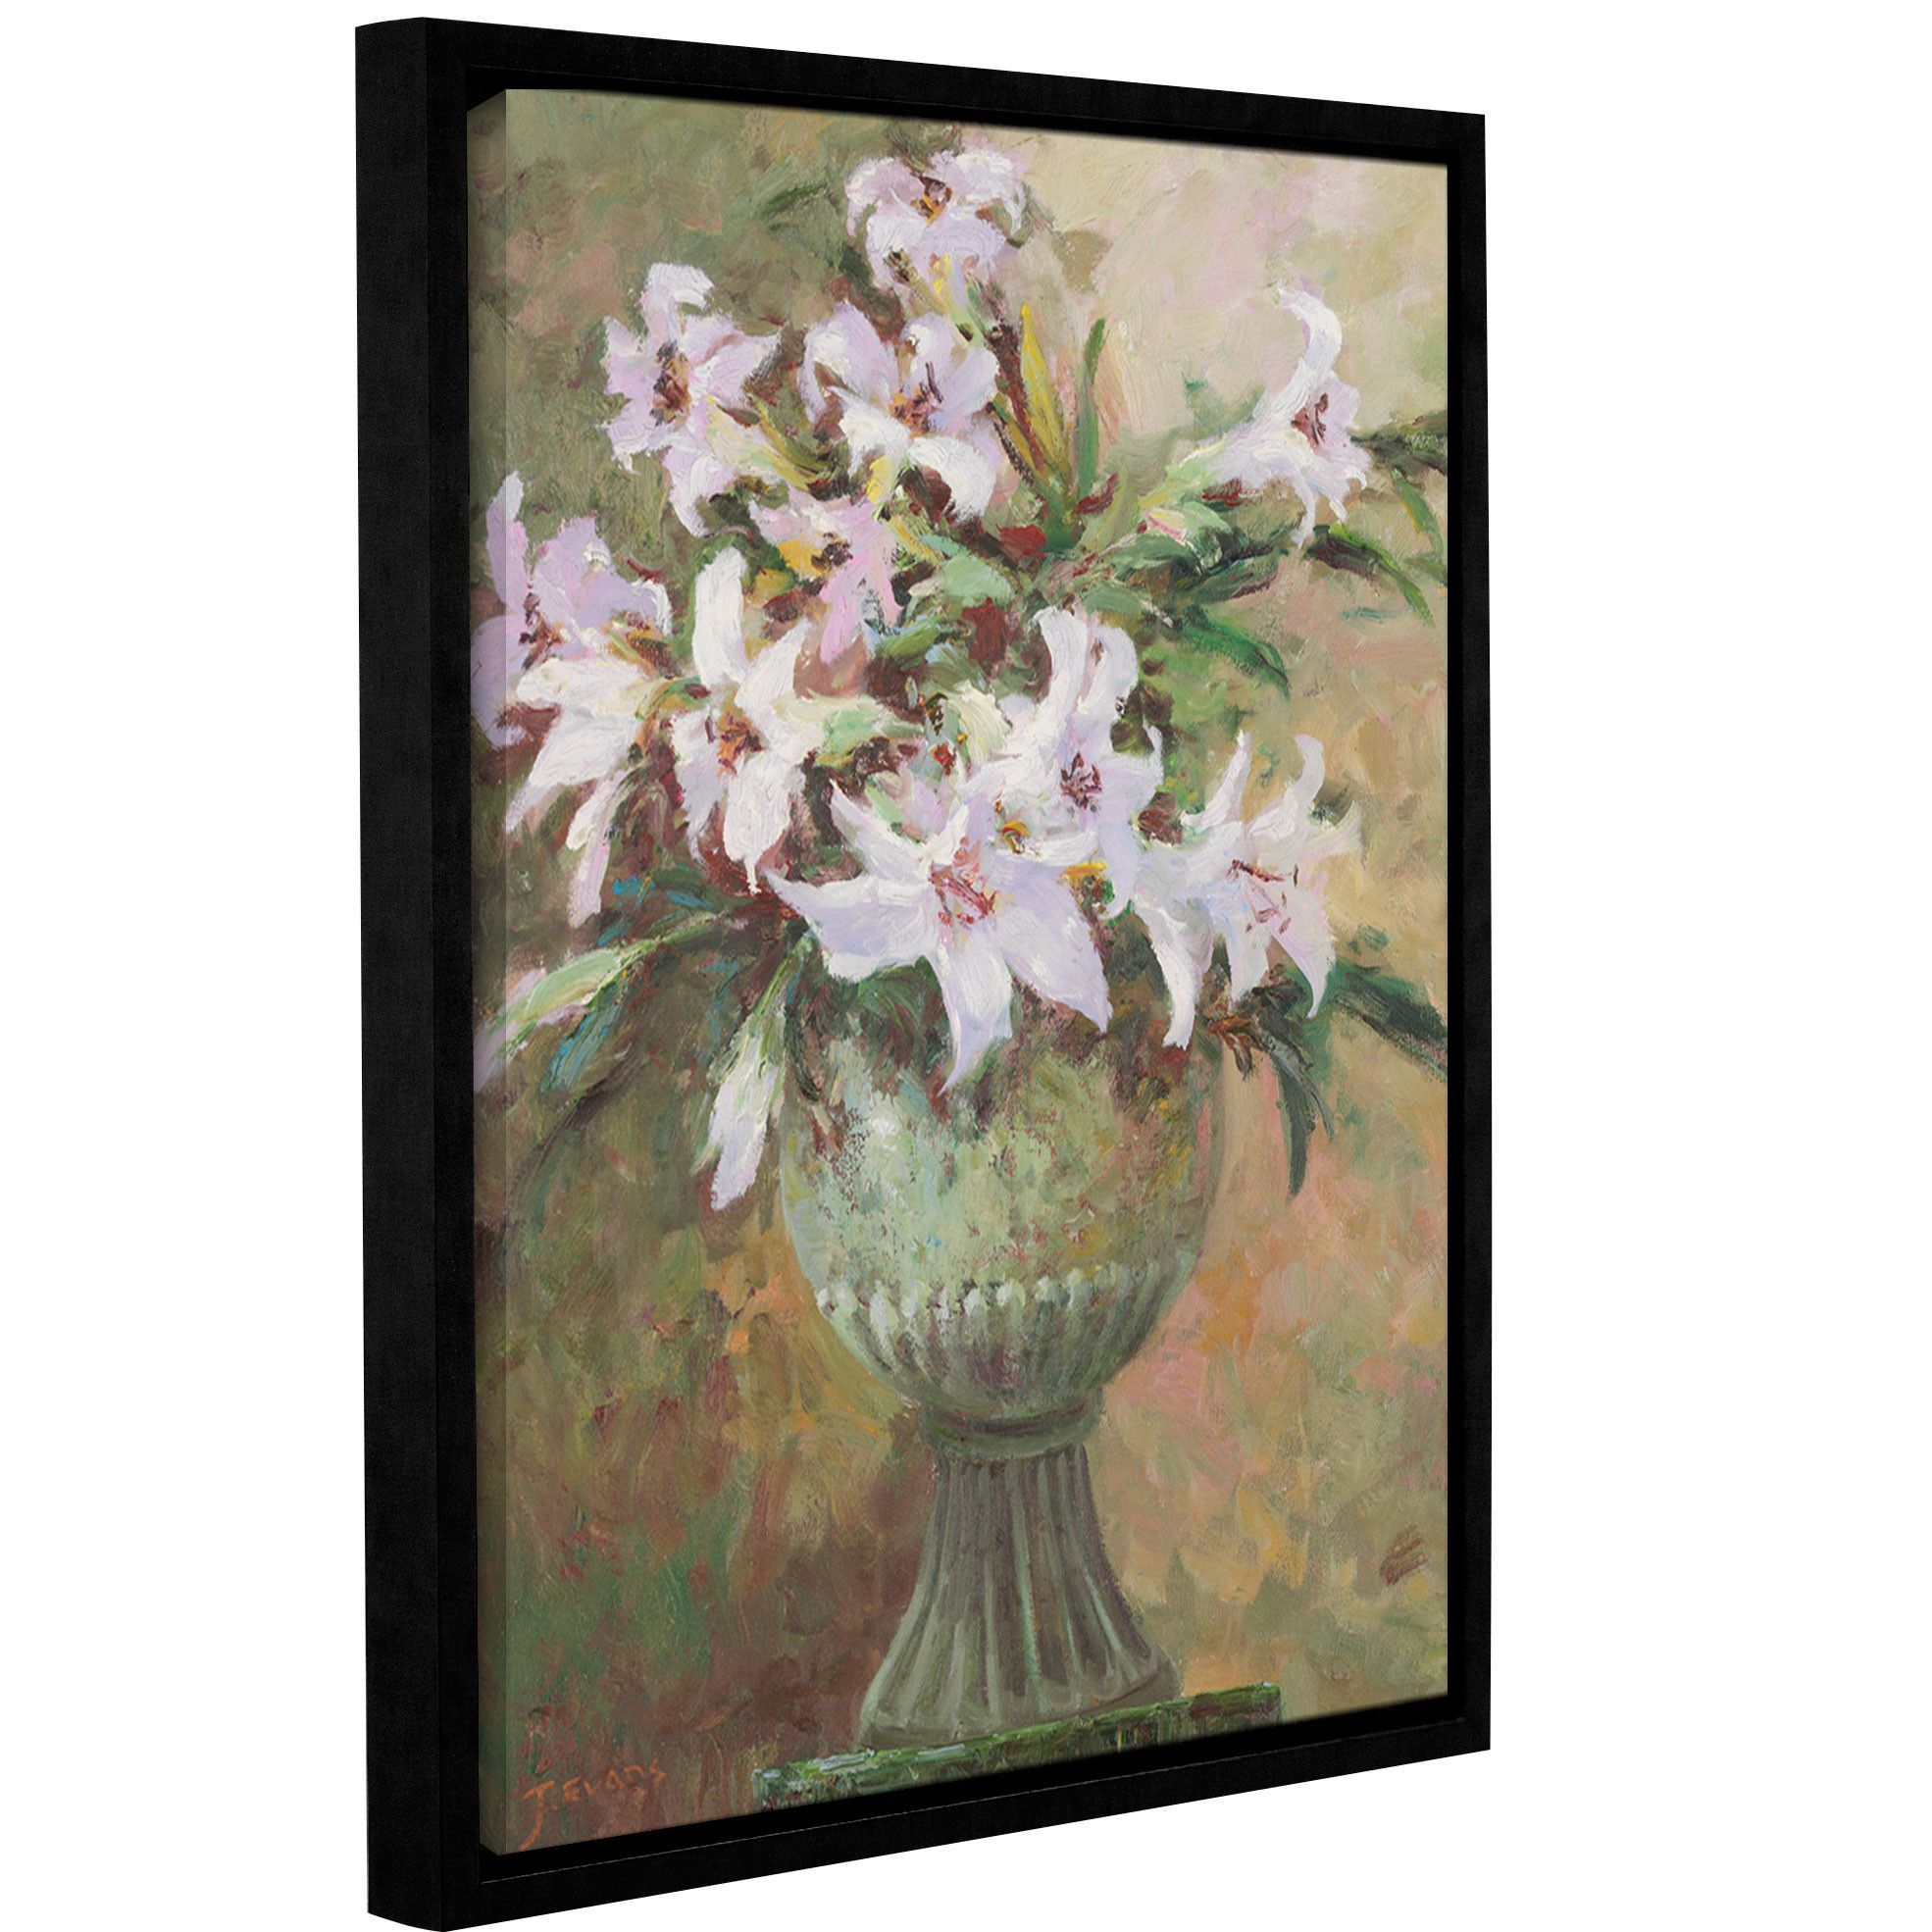 Evans nataliau by jerry evans framed painting print products